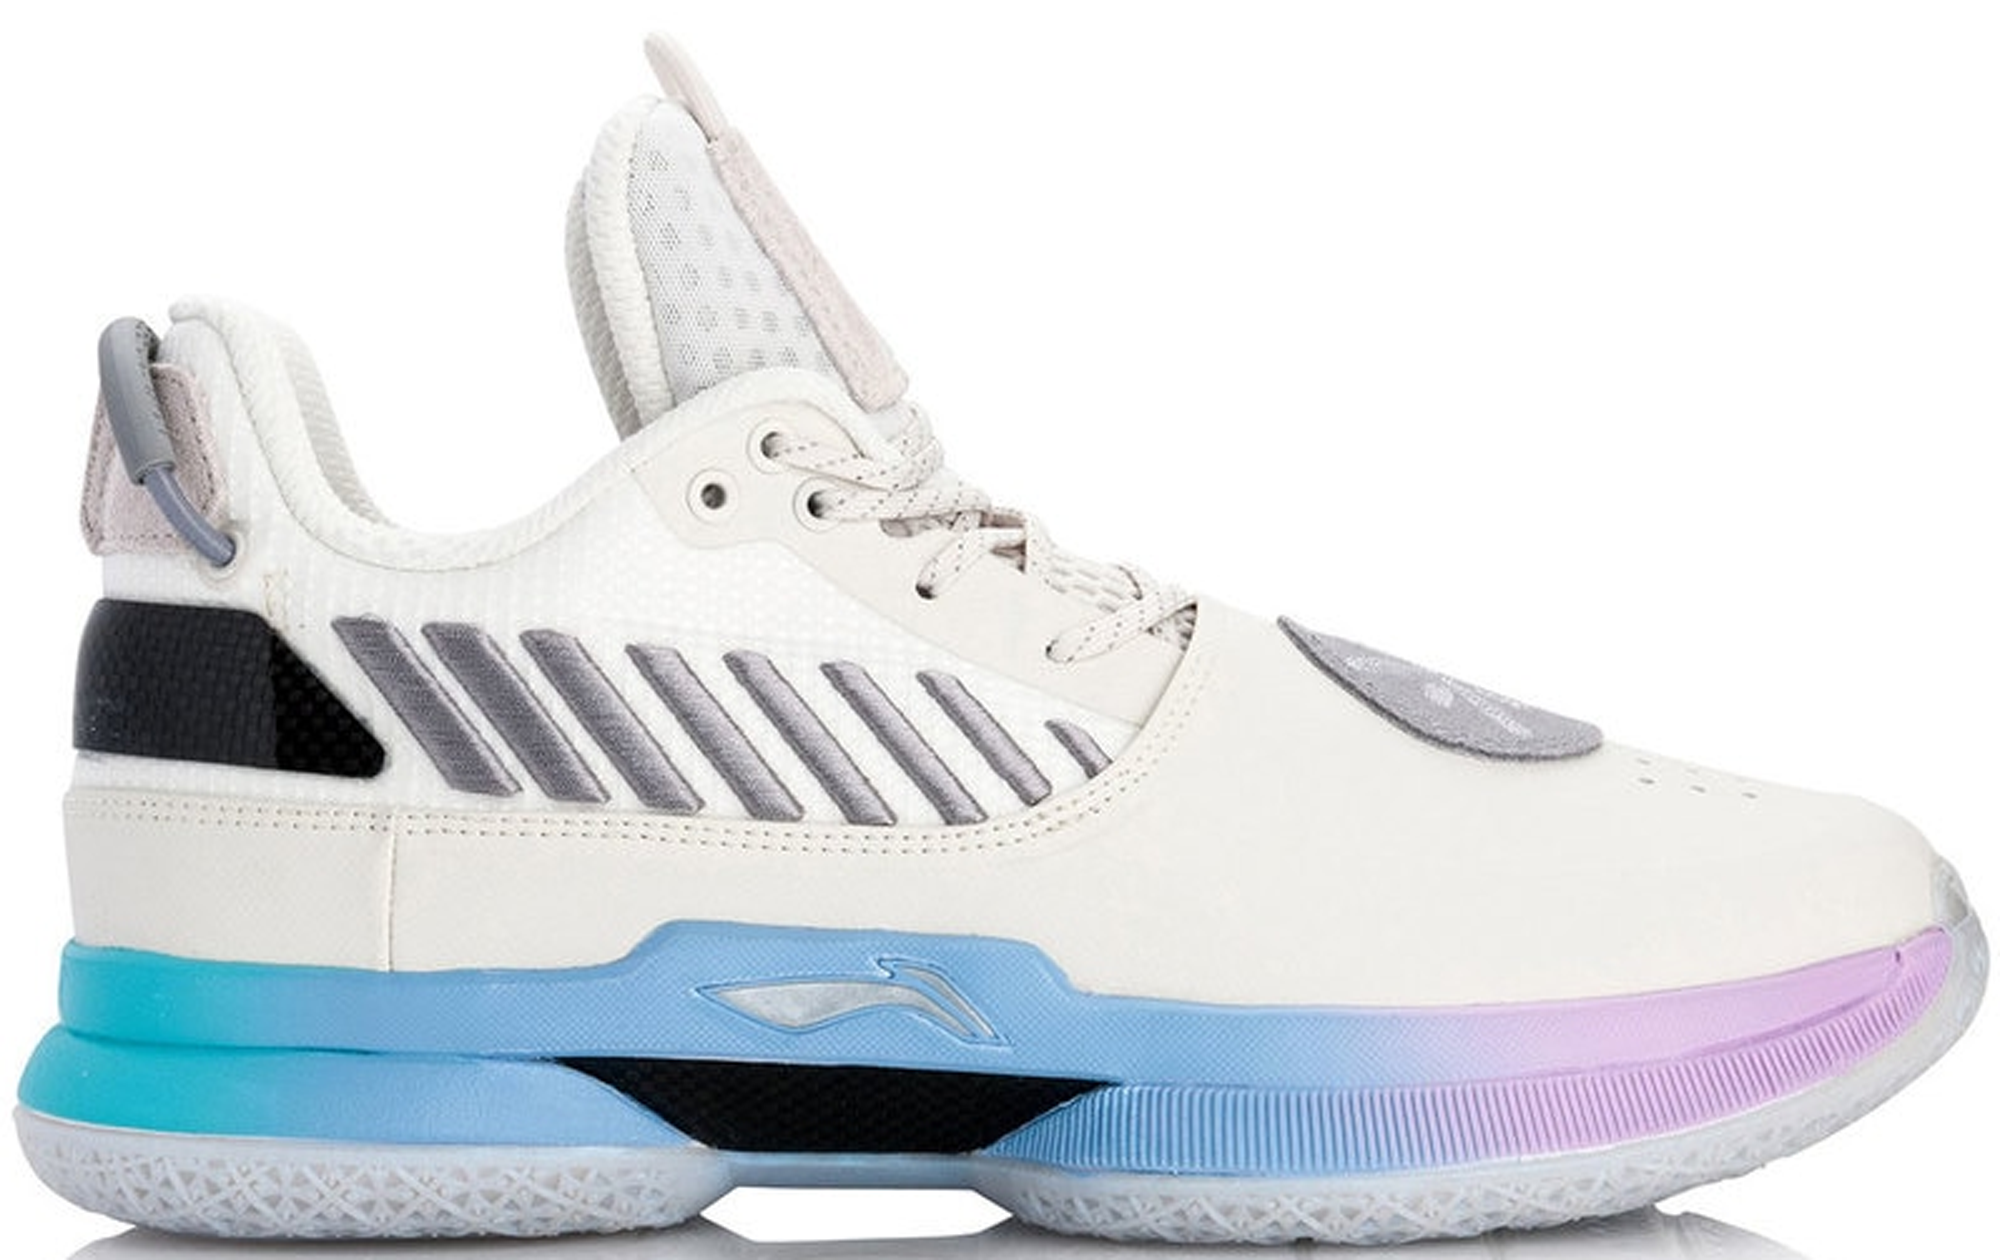 Li-Ning Way of Wade 7 Cotton Candy